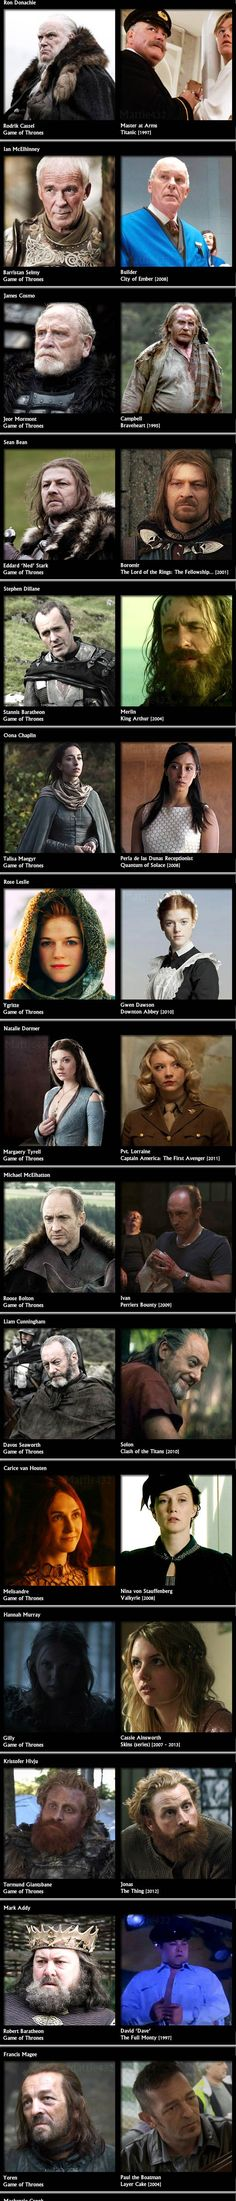 game of thrones actors-3